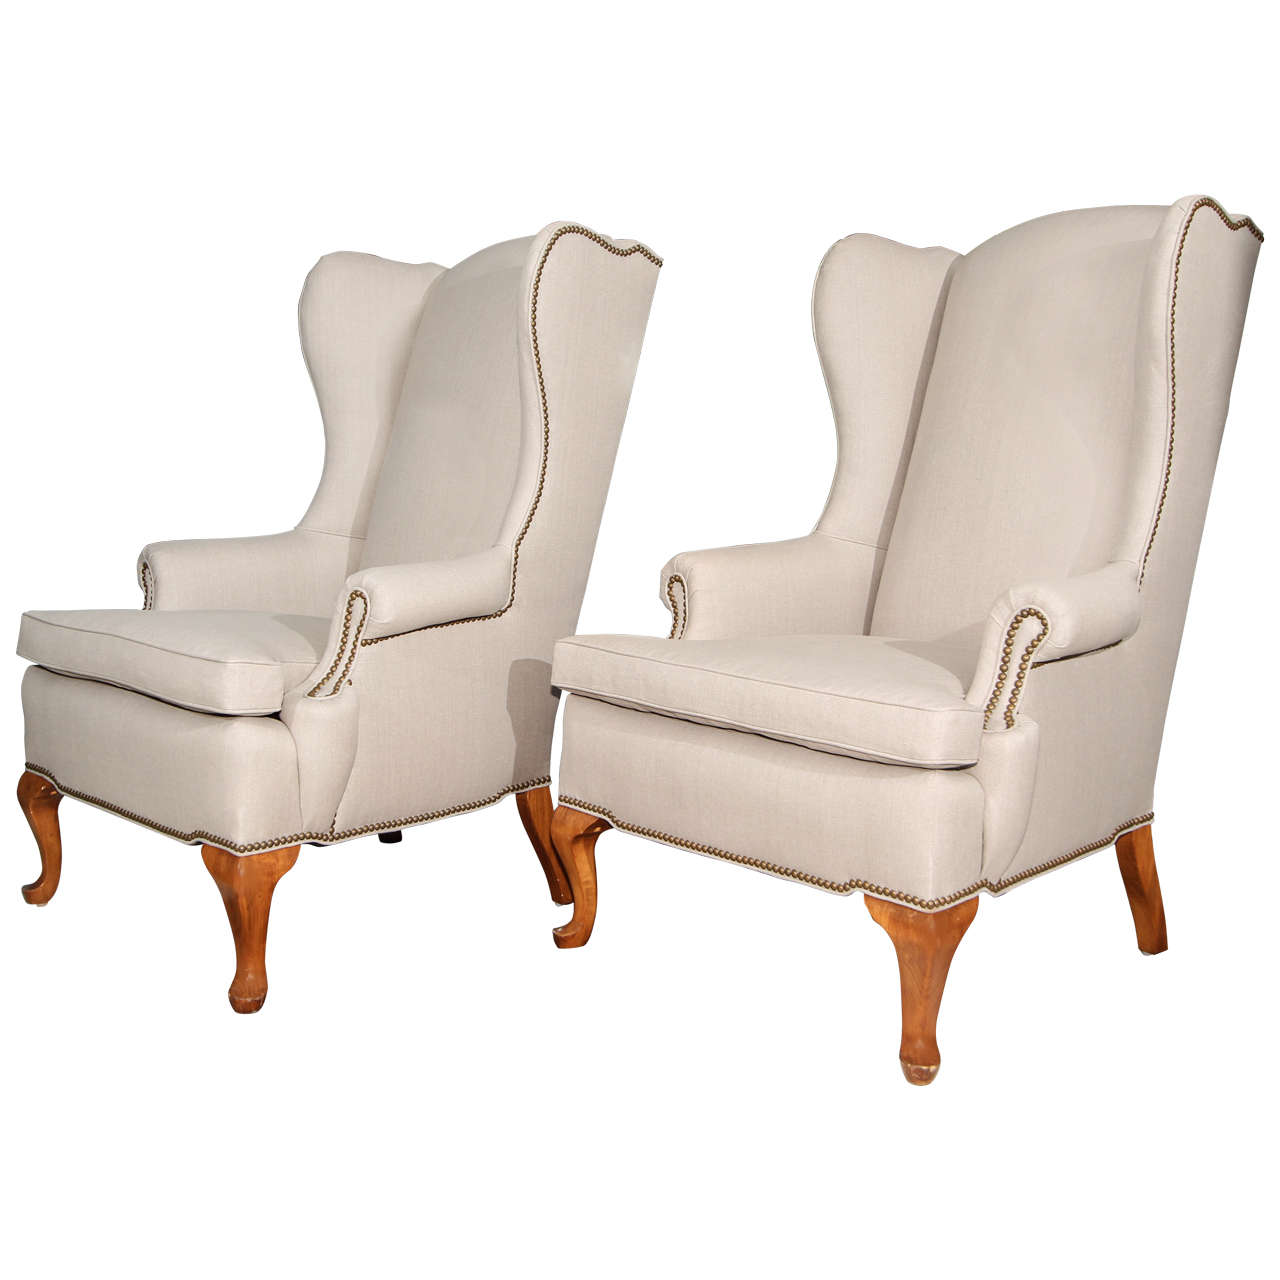 nailhead wingback chair covers for outdoor furniture pair of grey linen and wing chairs